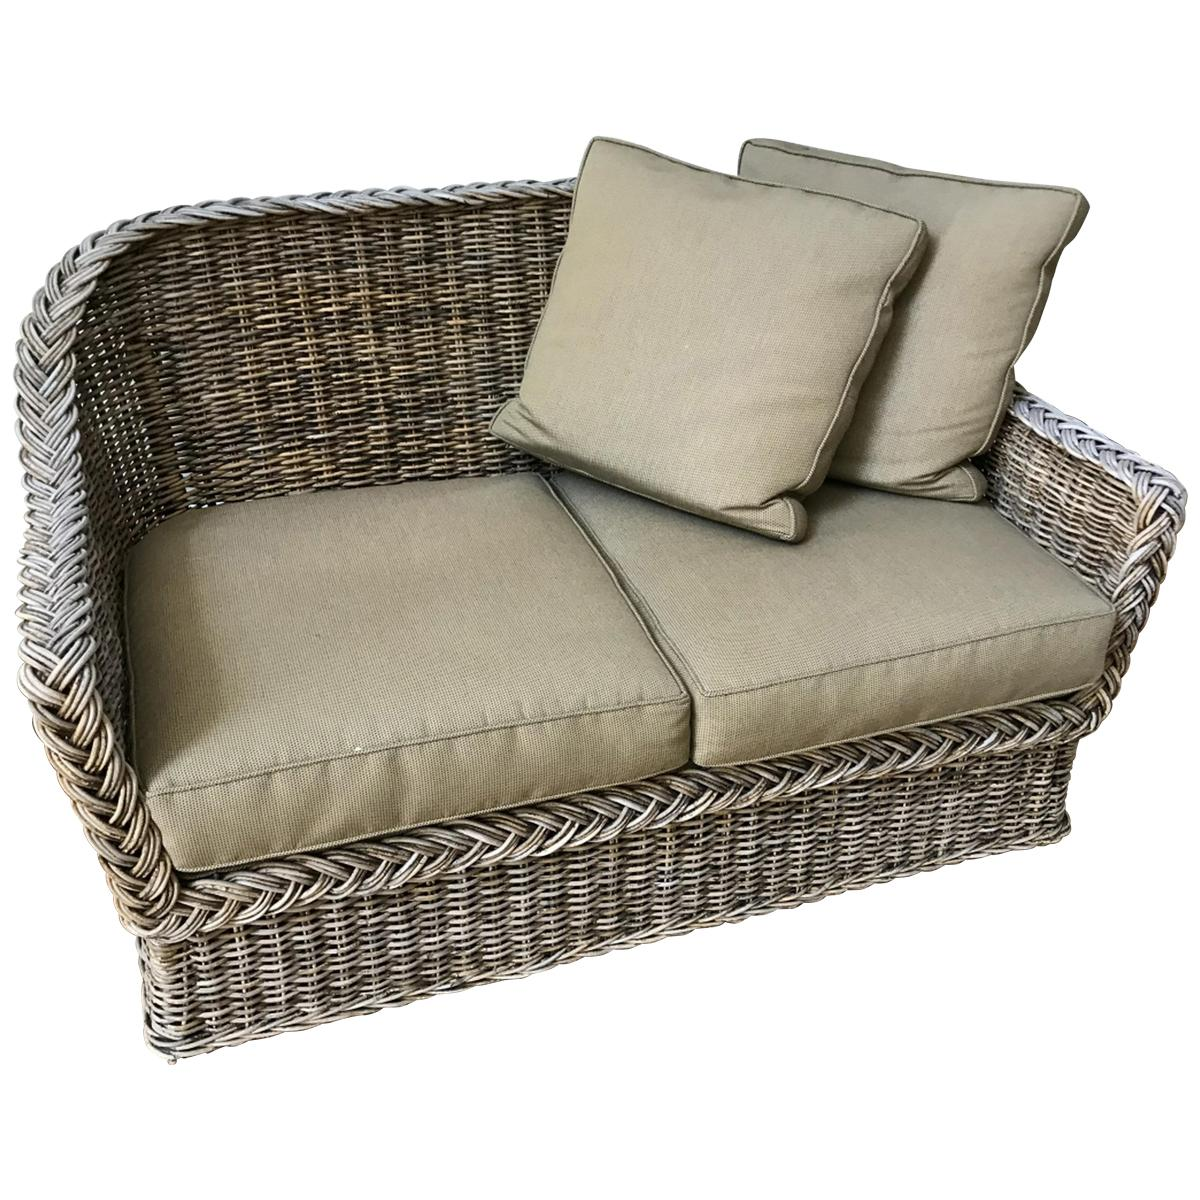 Ordinaire Antique Bar Harbor Wicker Sofa For Sale At 1stdibs